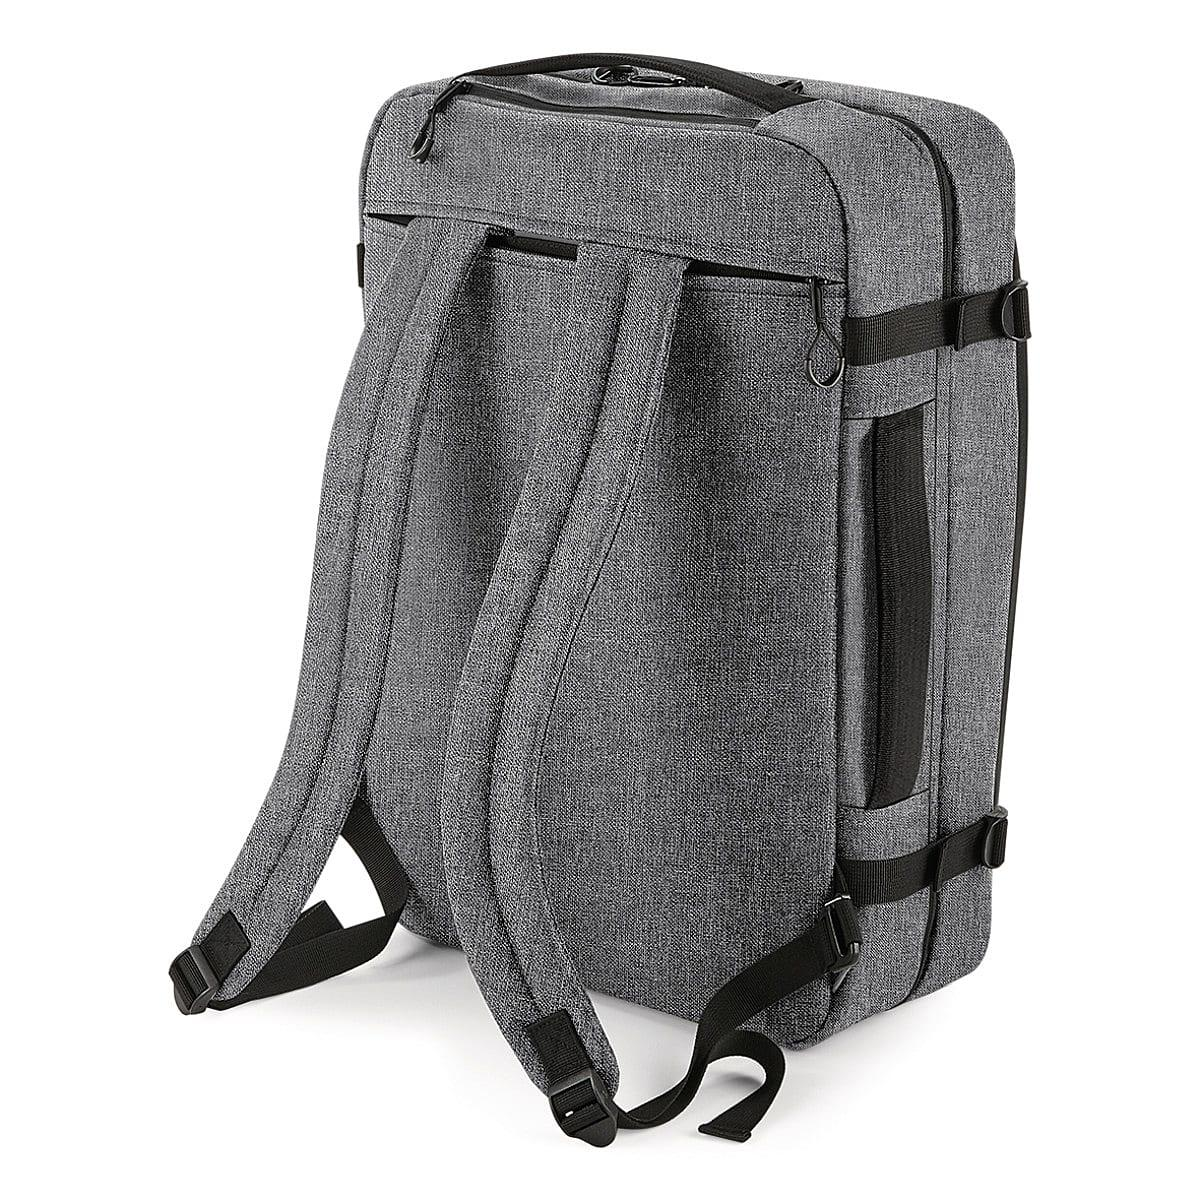 Bagbase Escape Carry On Backpack in Grey Marl (Product Code: BG480)